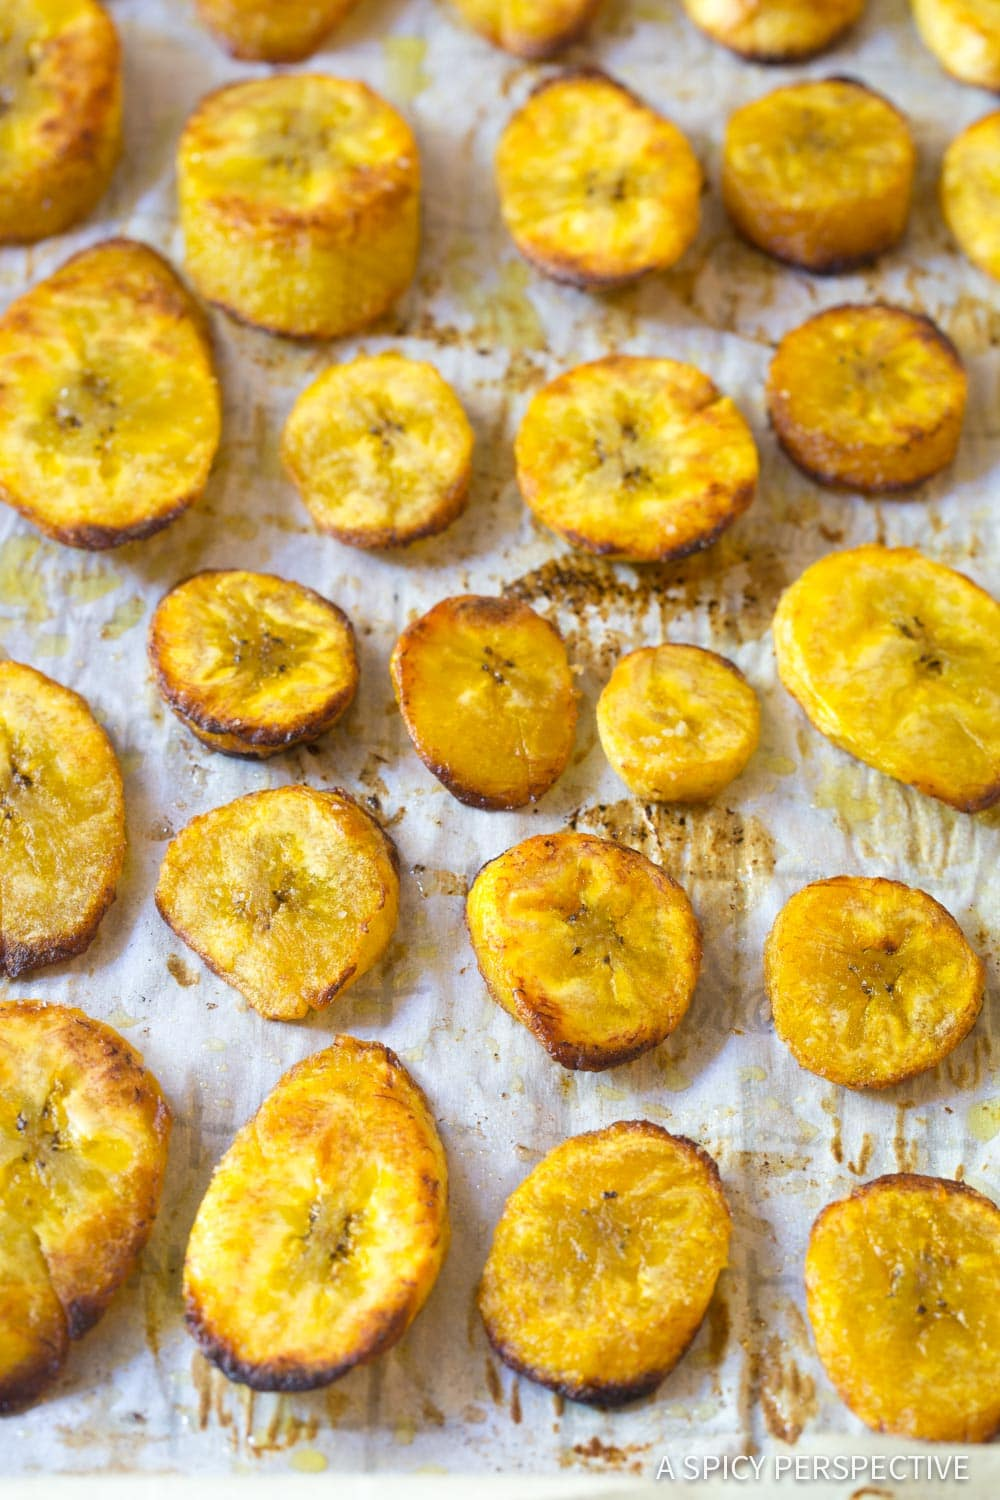 Best Baked Plantains Recipe #ASpicyPerspective #Paleo